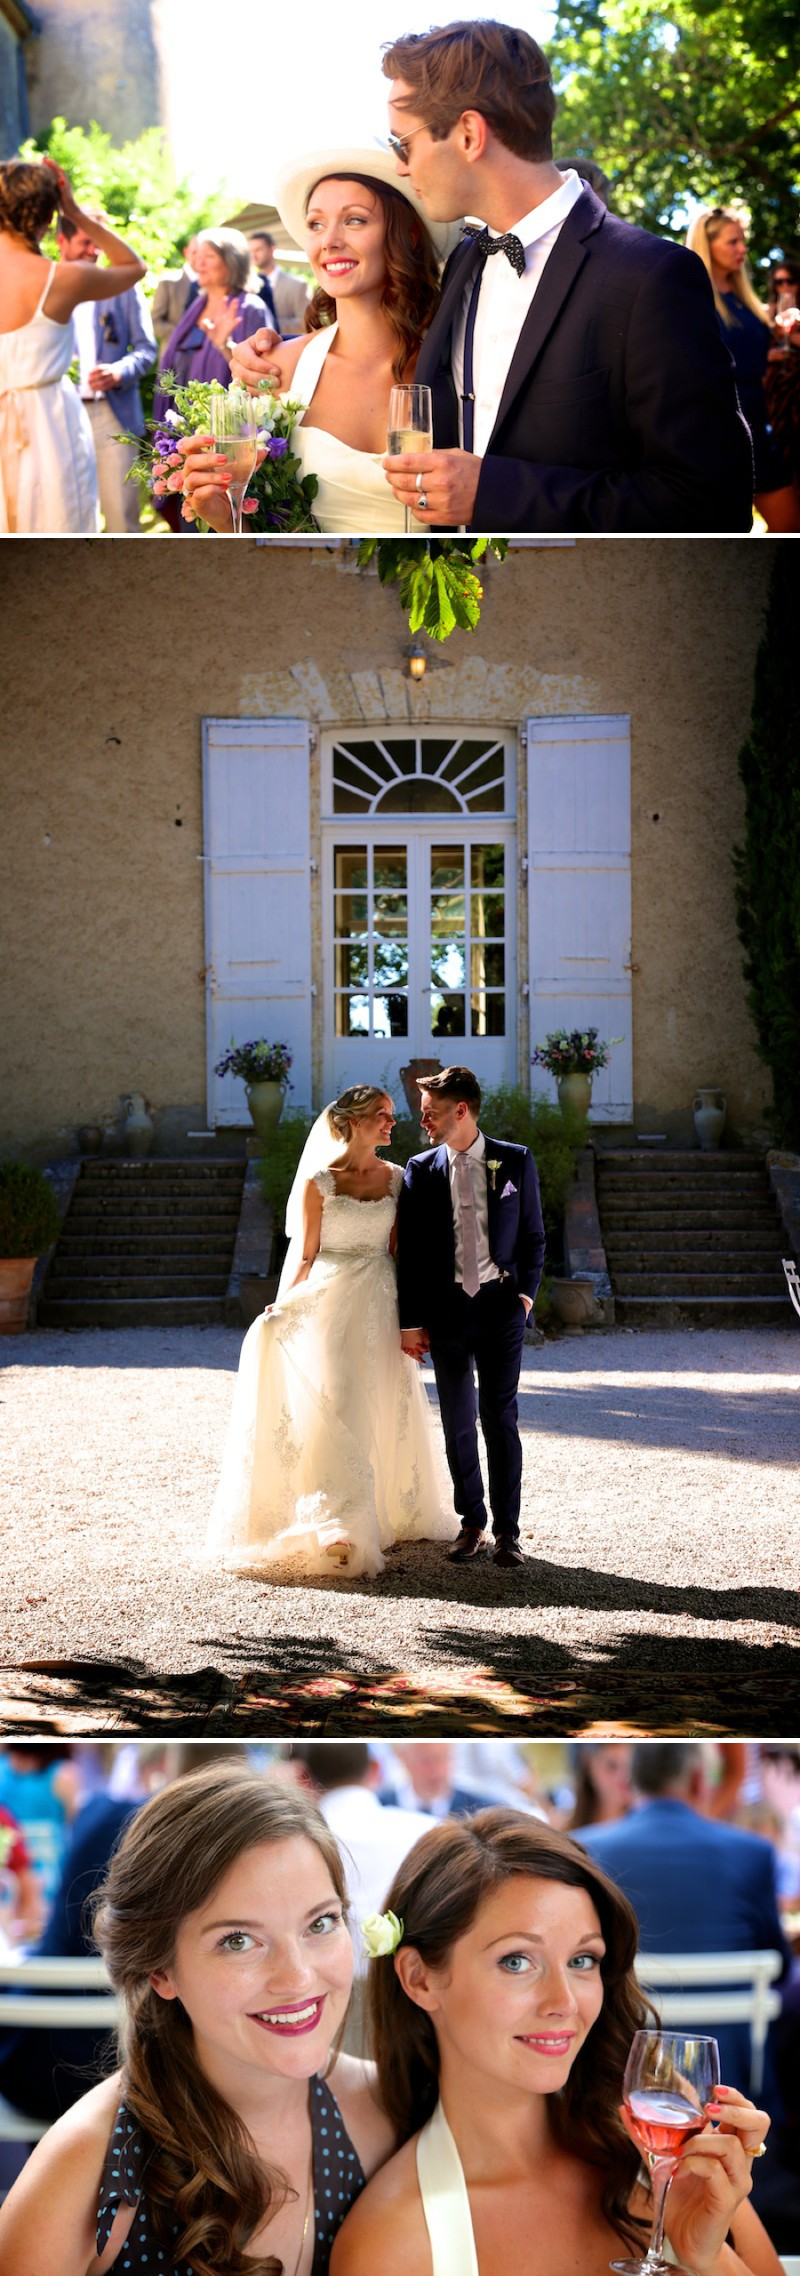 A Beautiful Destination Wedding At Chateau De Lartigolle In France With A Classic Lace Wedding Dress Photographed by Matthew Weinreb._0008